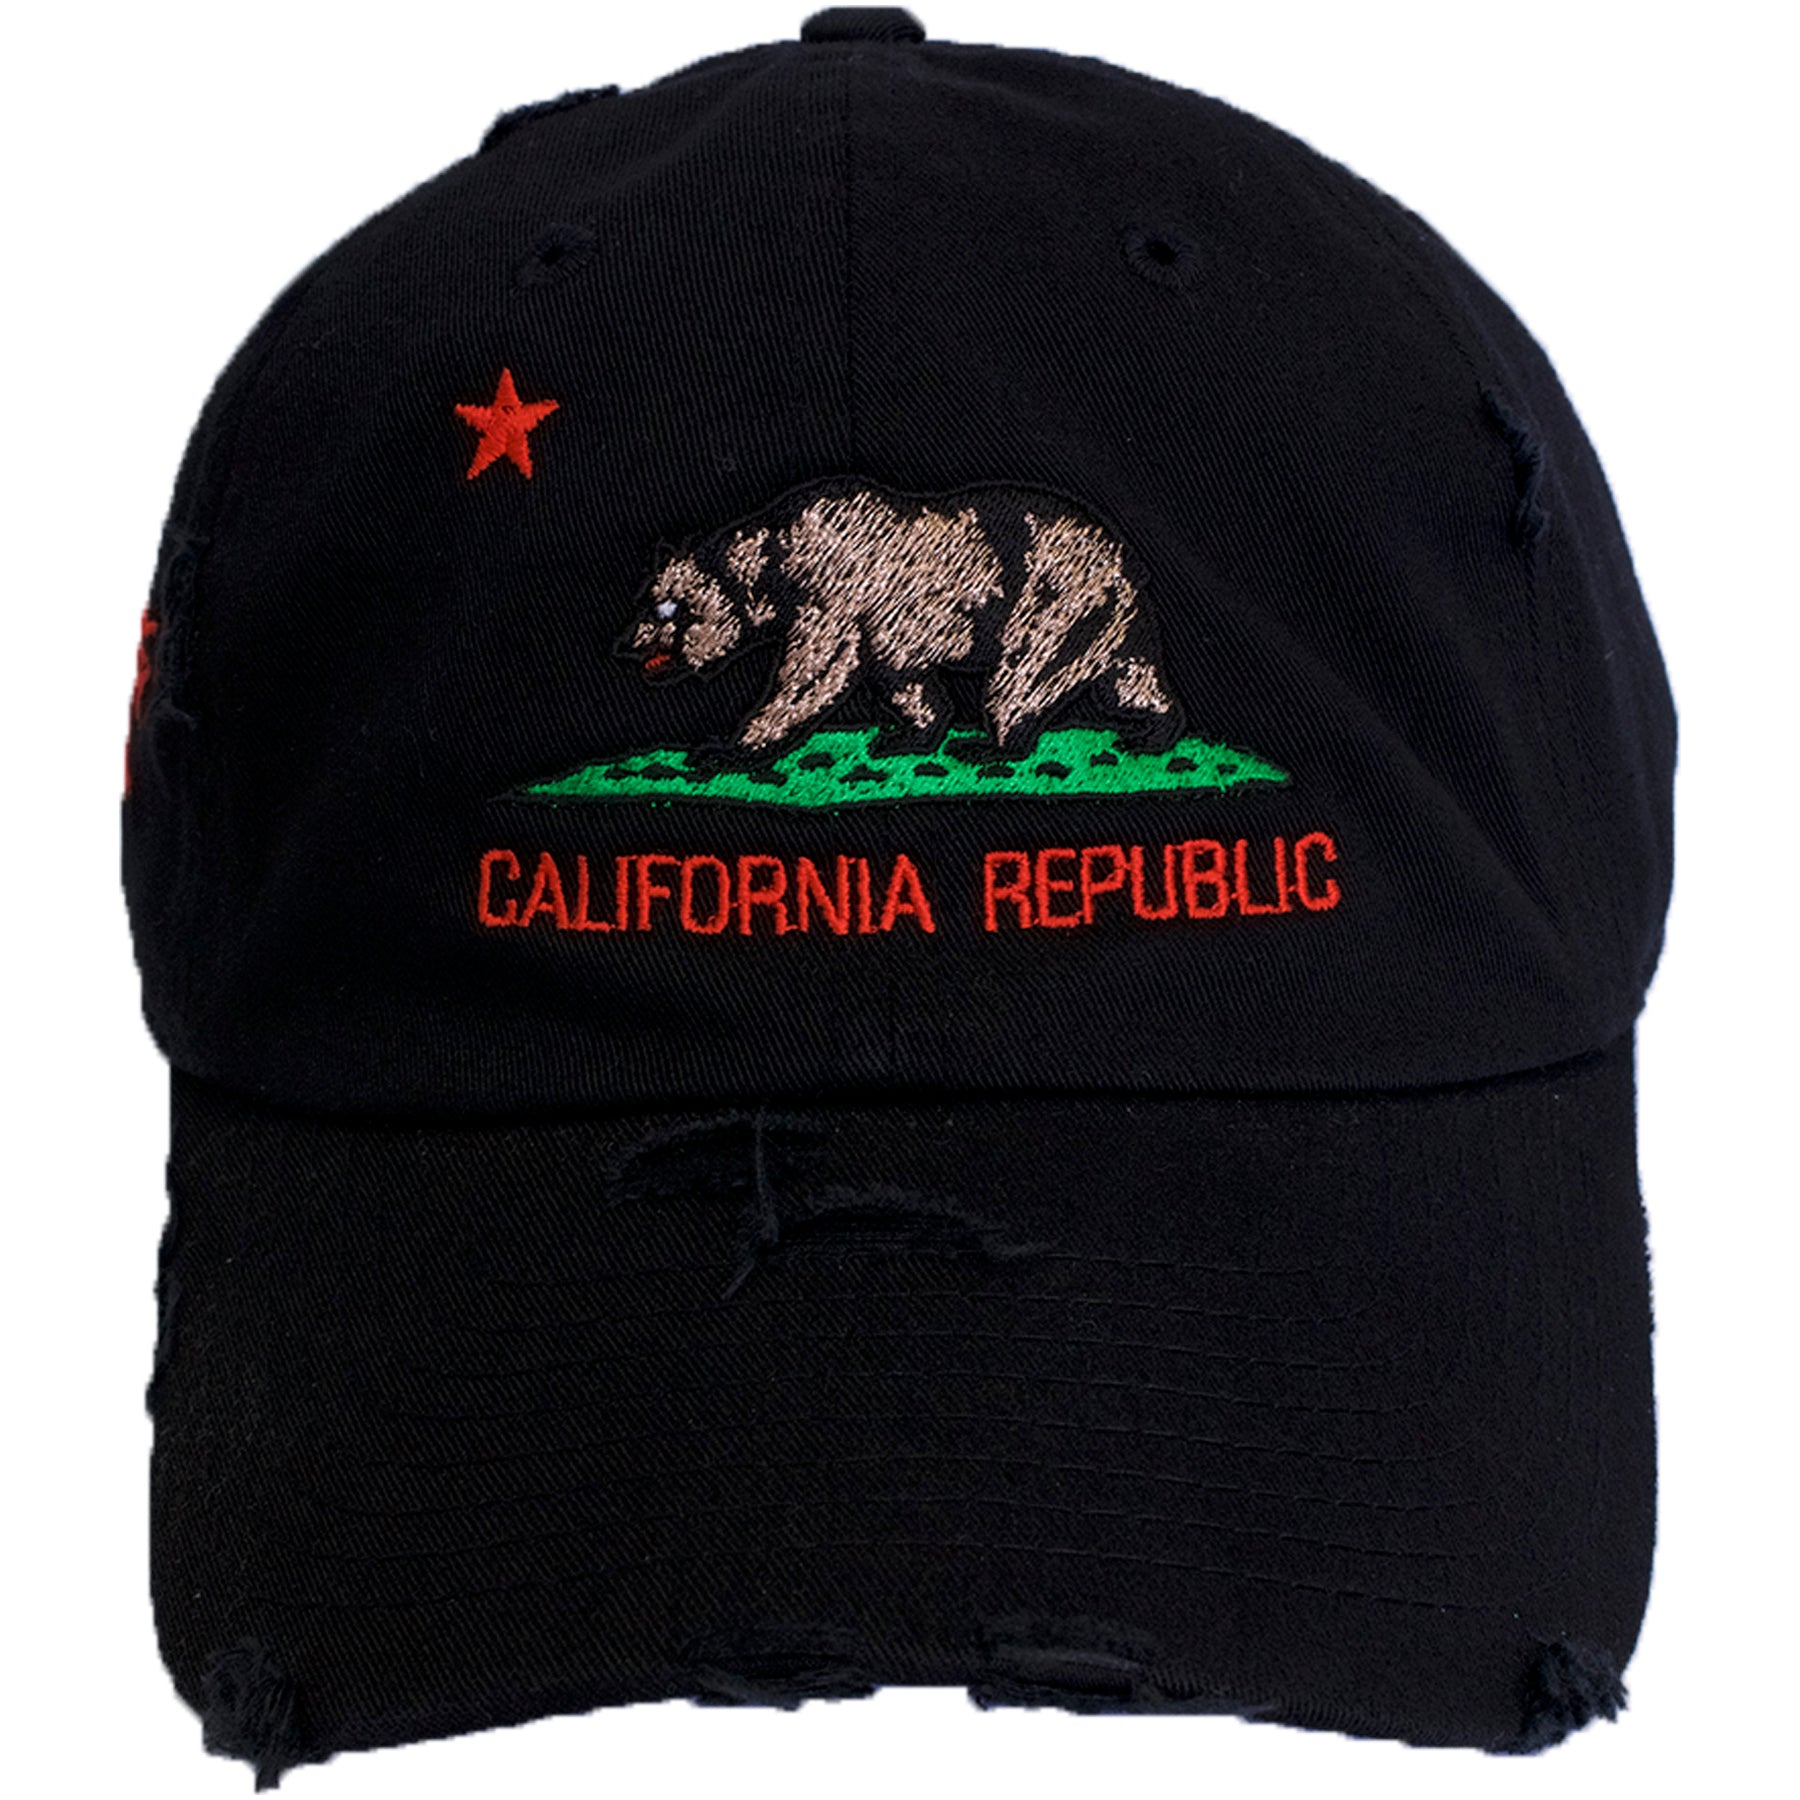 1dcf69c2d22 the black distressed california republic dad hat has the california republic  logo embroidered on the front